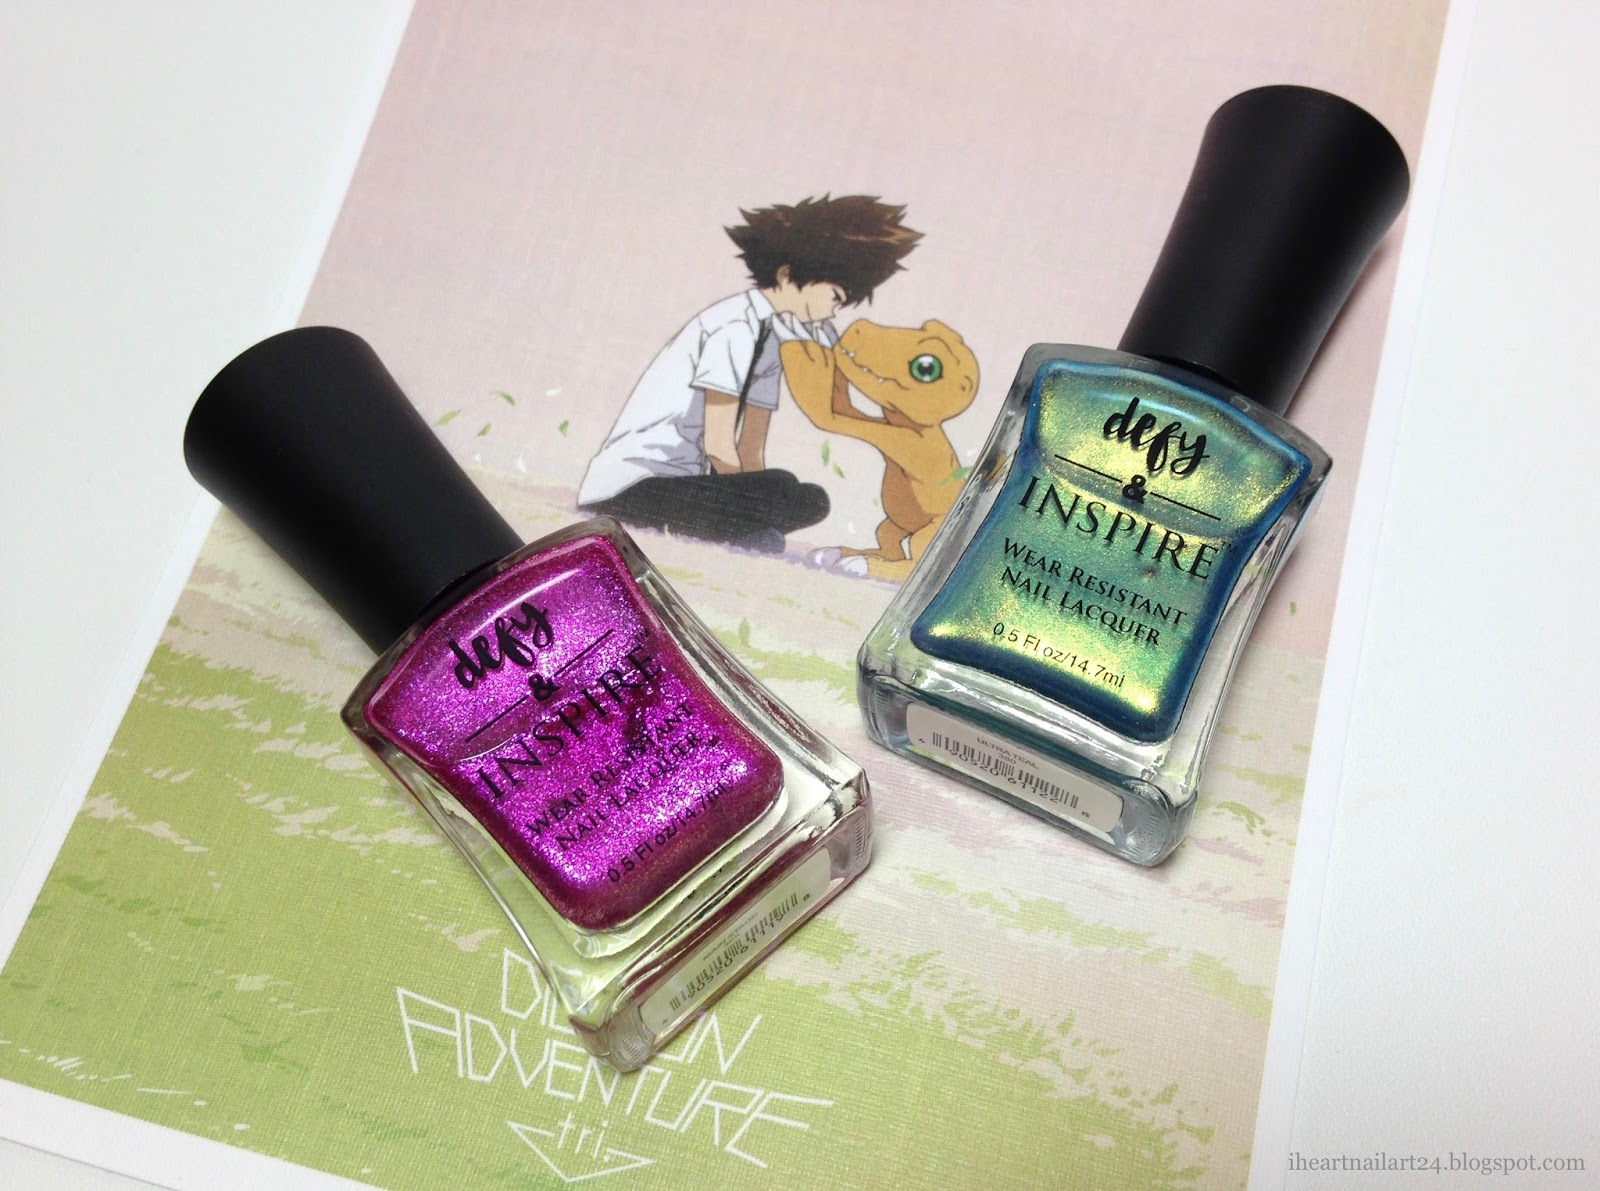 Defy & Inspire Nail Lacquer Swatches | I Heart Nail Art